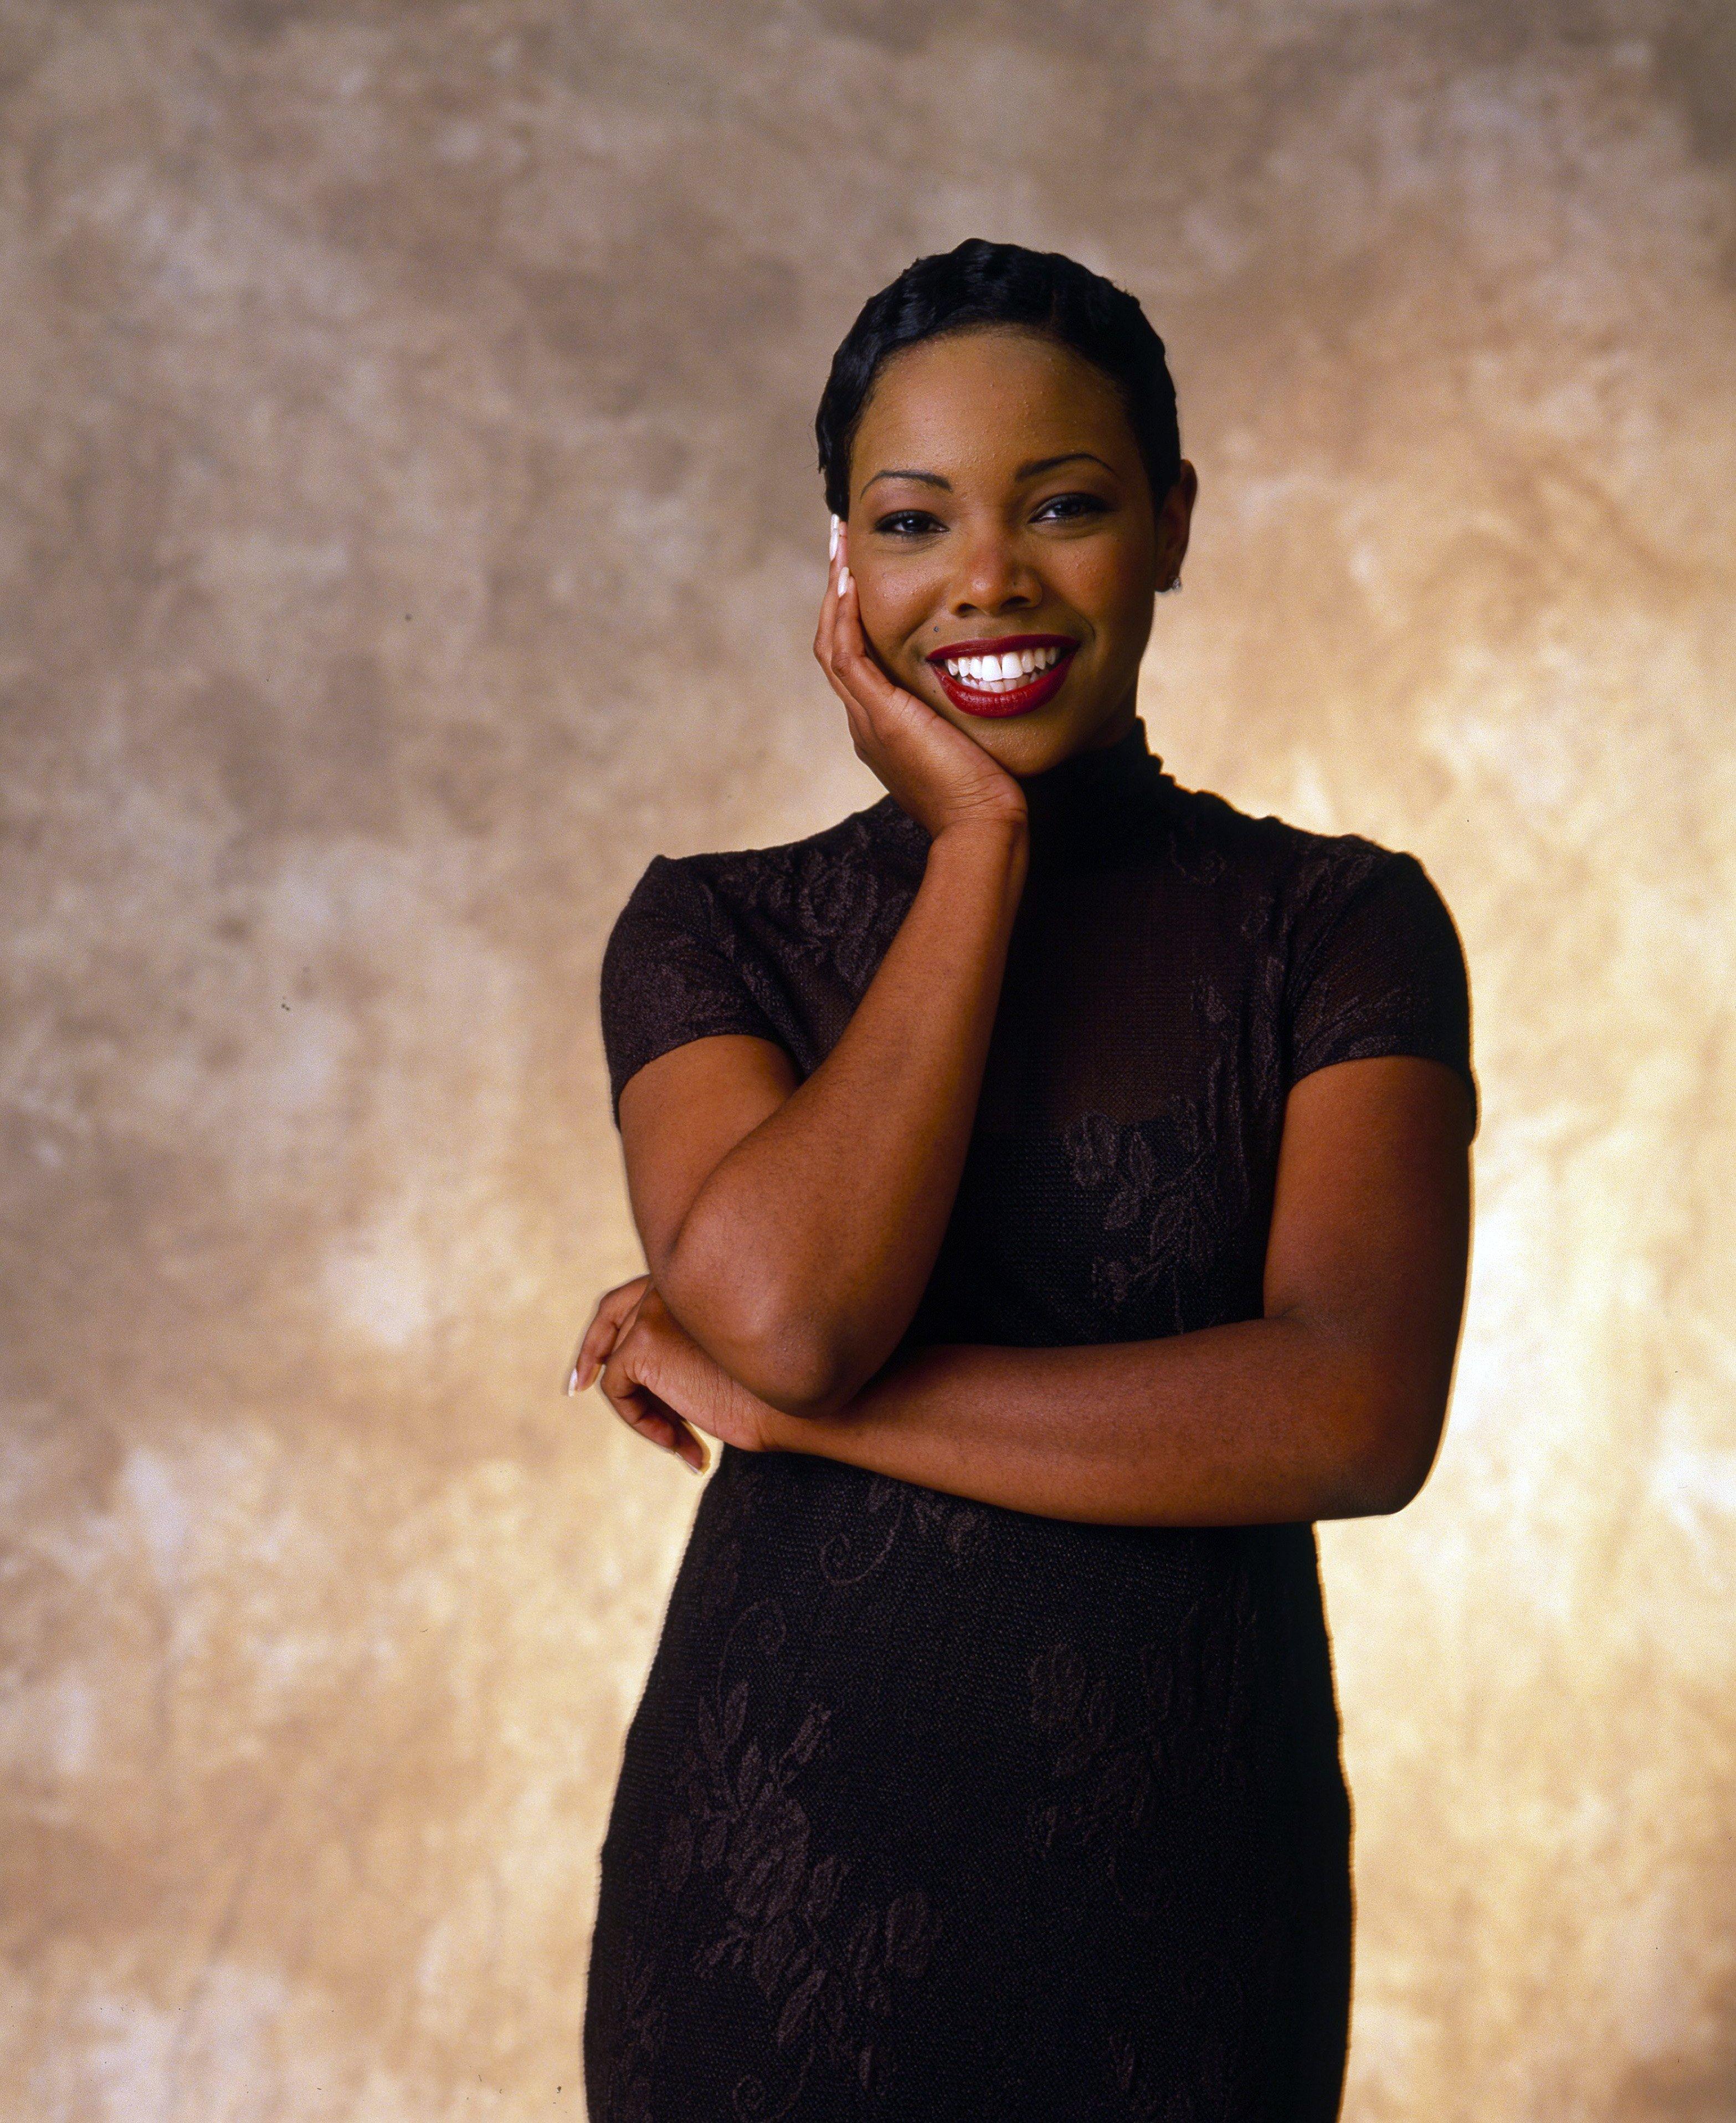 """Kellie Shanygne Williams poses for a photograph at a """"Family Matters"""" shoot on July 24, 1995. 